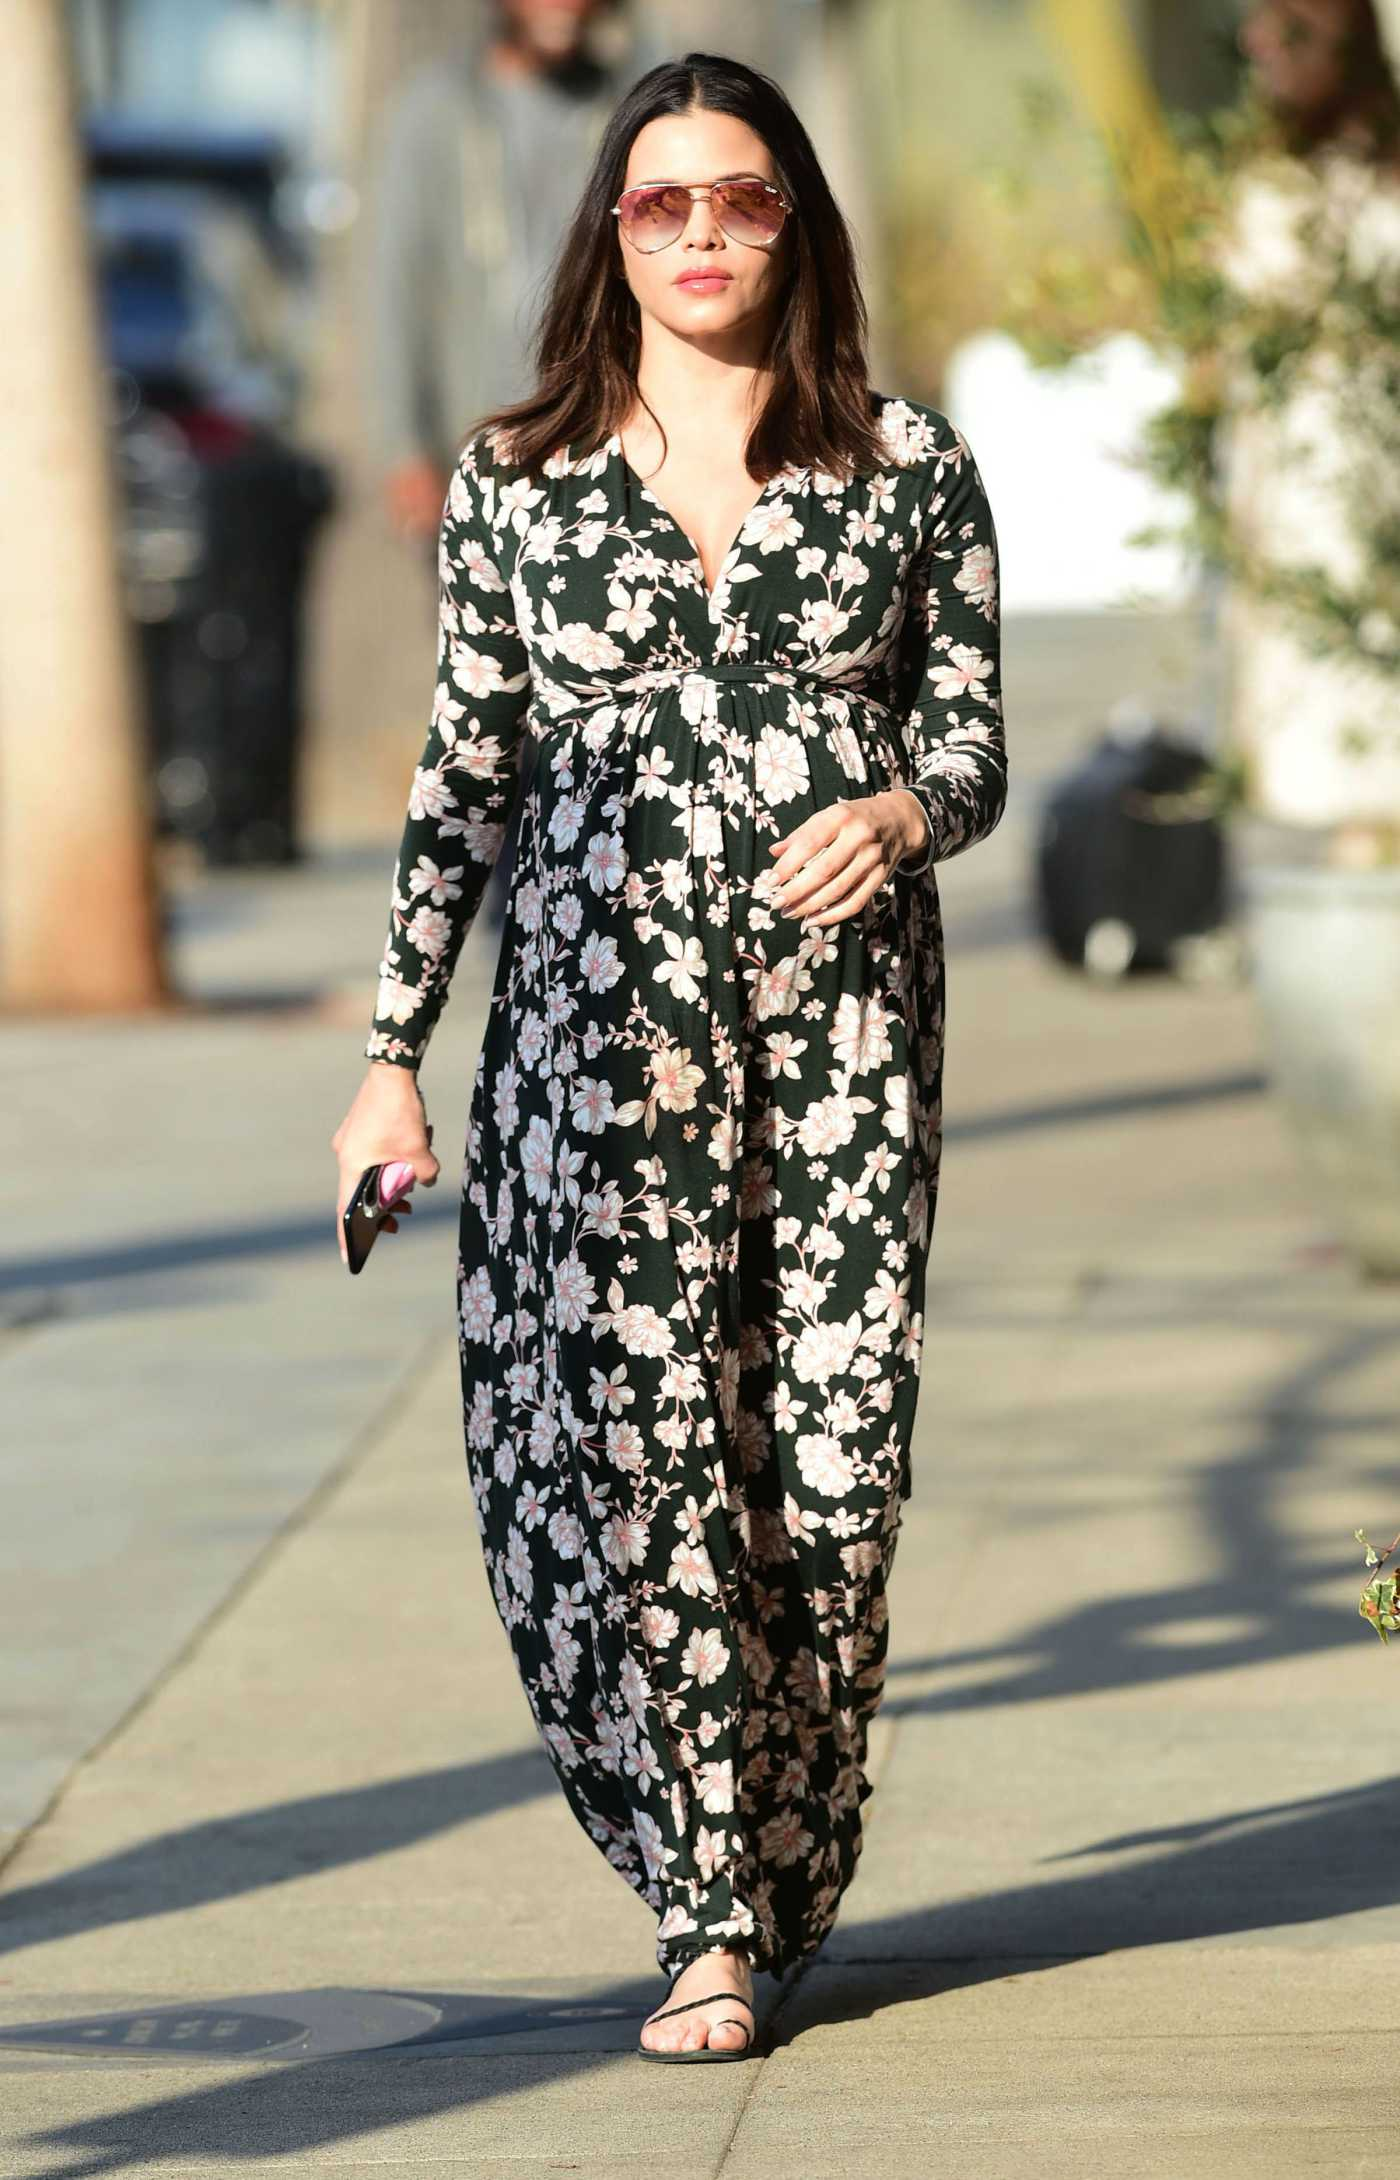 Jenna Dewan in a Long Floral Dress Was Seen Out in Los Angeles 01/15/2020